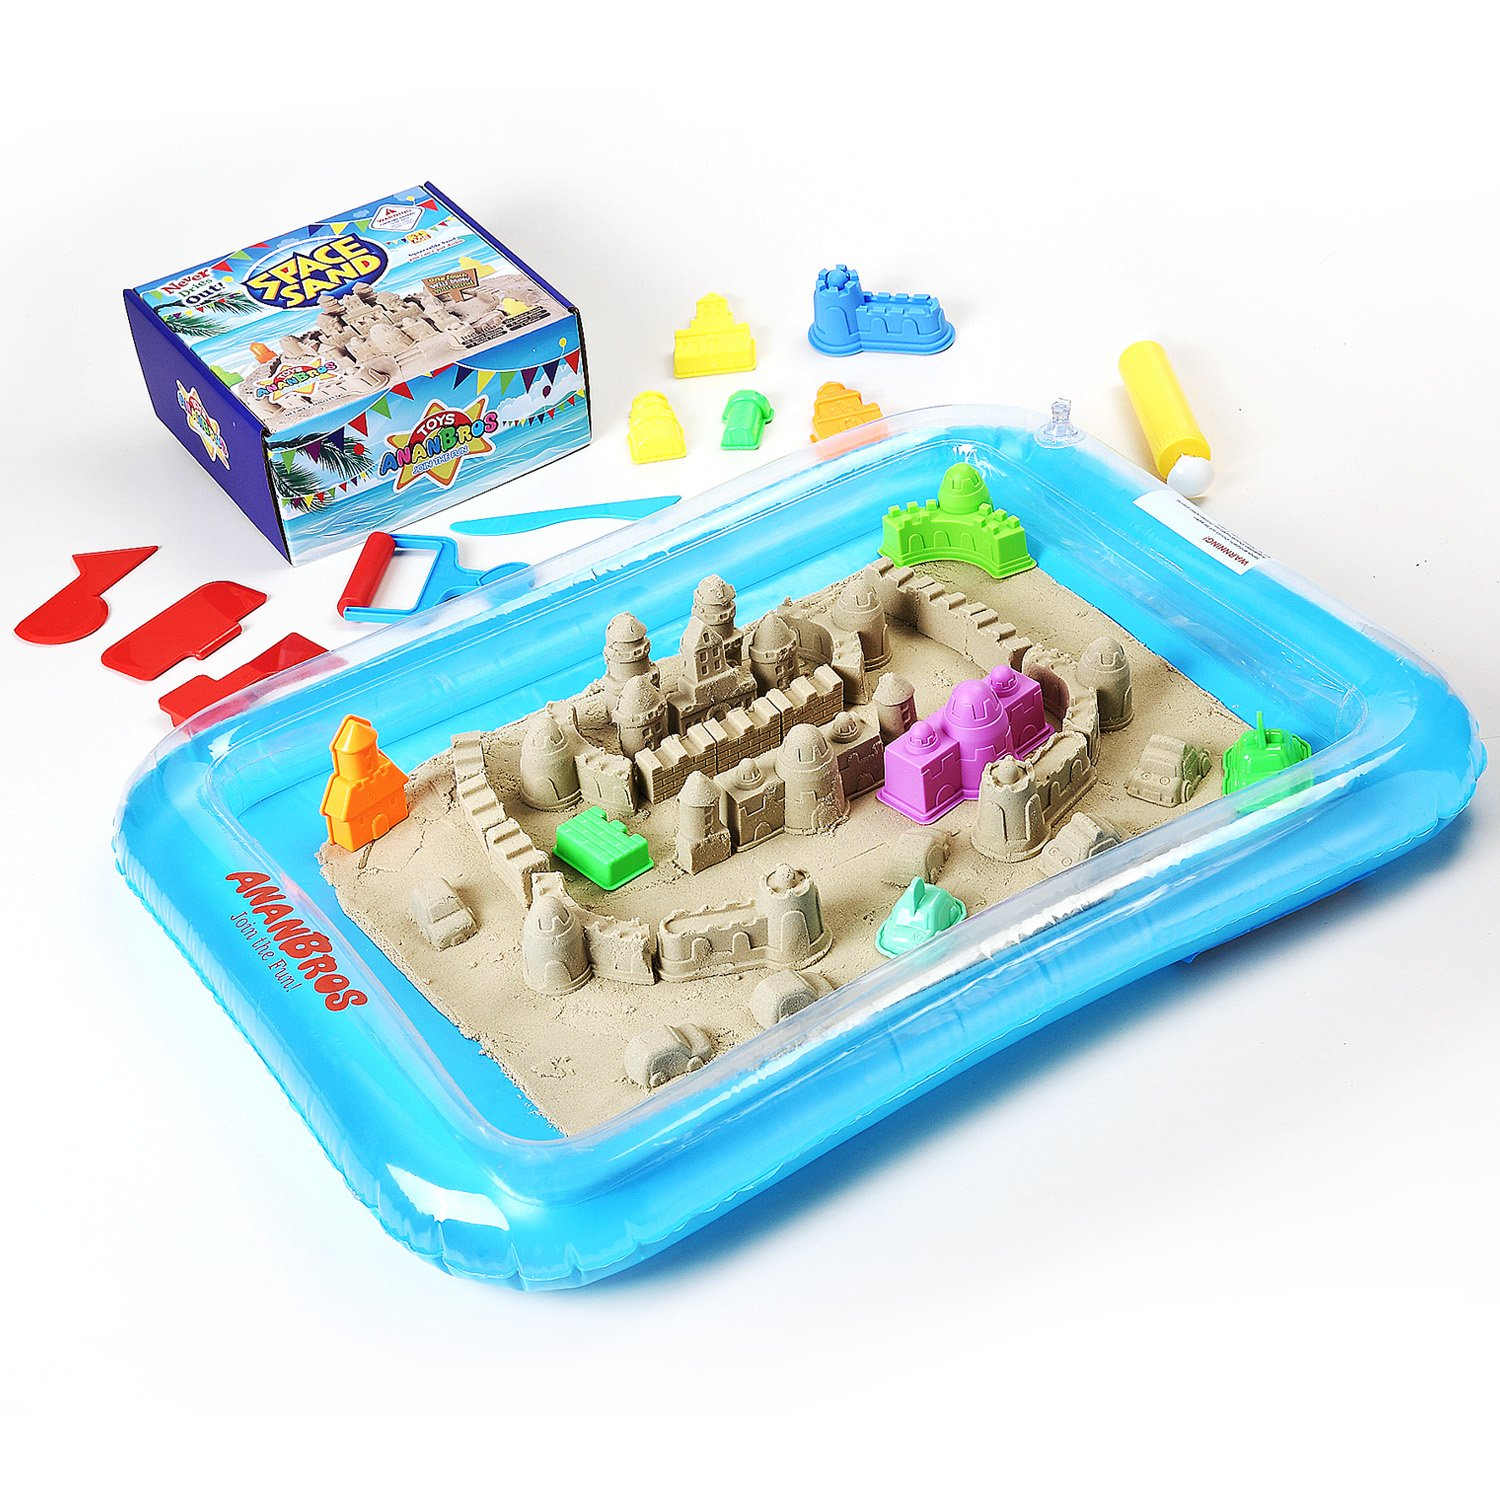 Amazon Kinetic Play Sand Magic Space Sand Castle Building